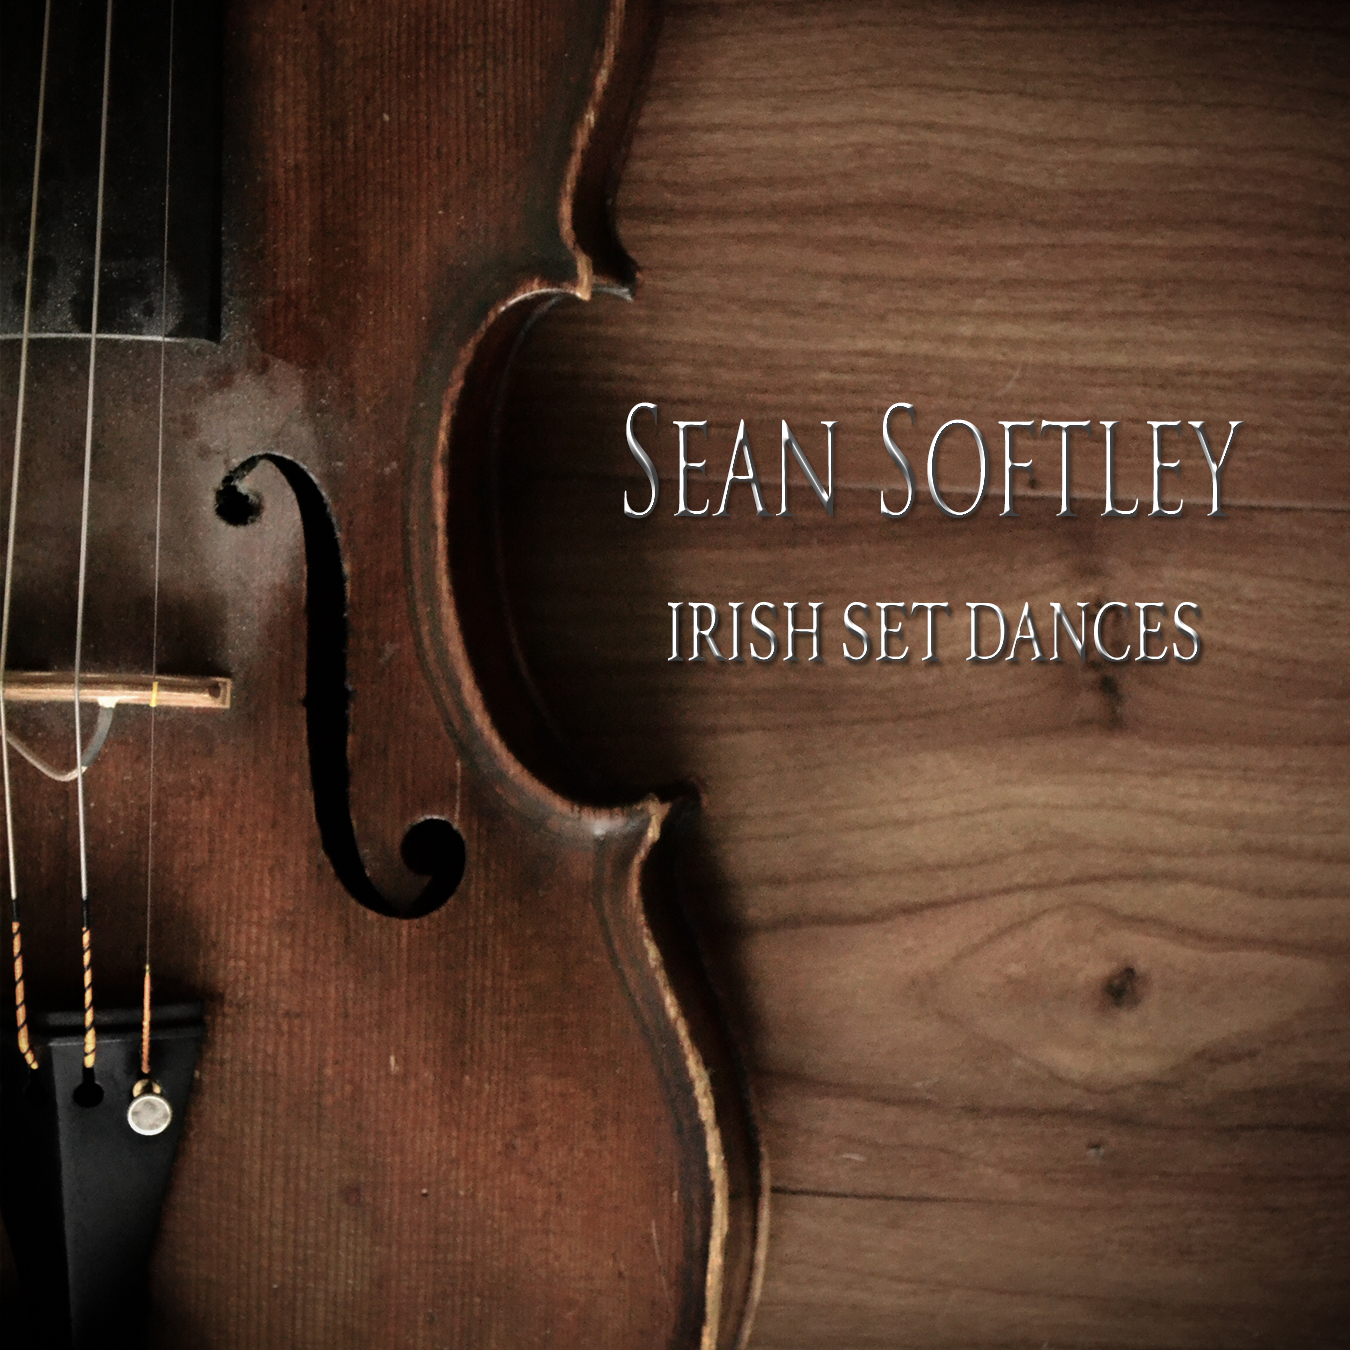 Sean Softley - Irish Set Dances  Each of the Irish Set Dances are recorded and offered at the correct tempos for practice and competition. Find your set dance on all major music streaming and download platforms!